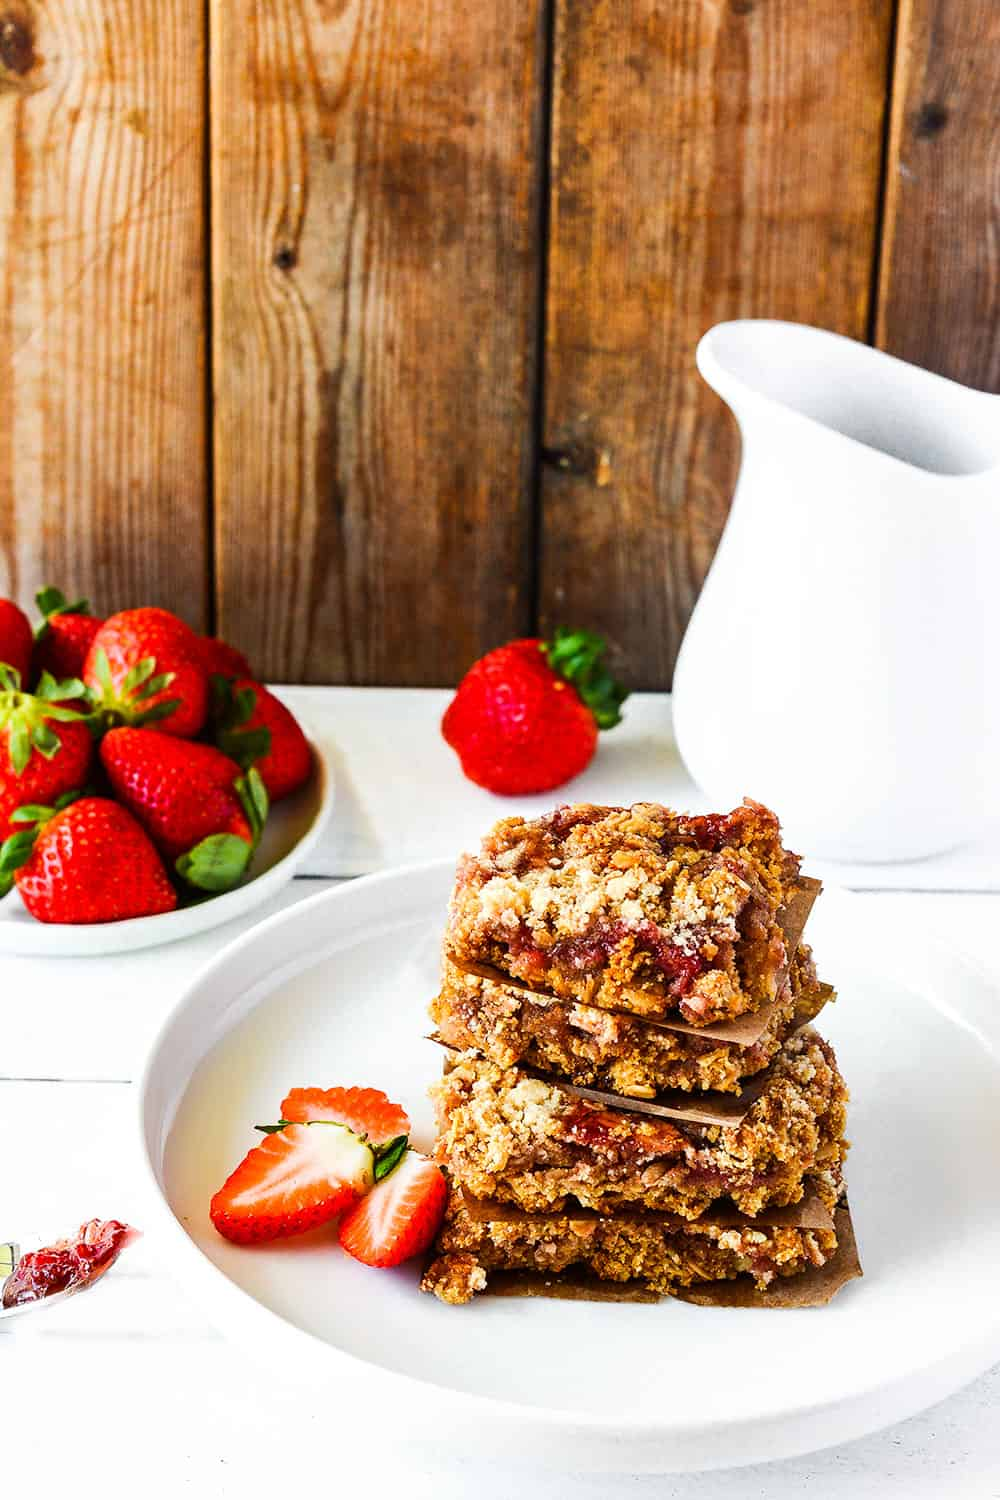 Strawberry Oat Bars (Gluten-Free, Vegan)